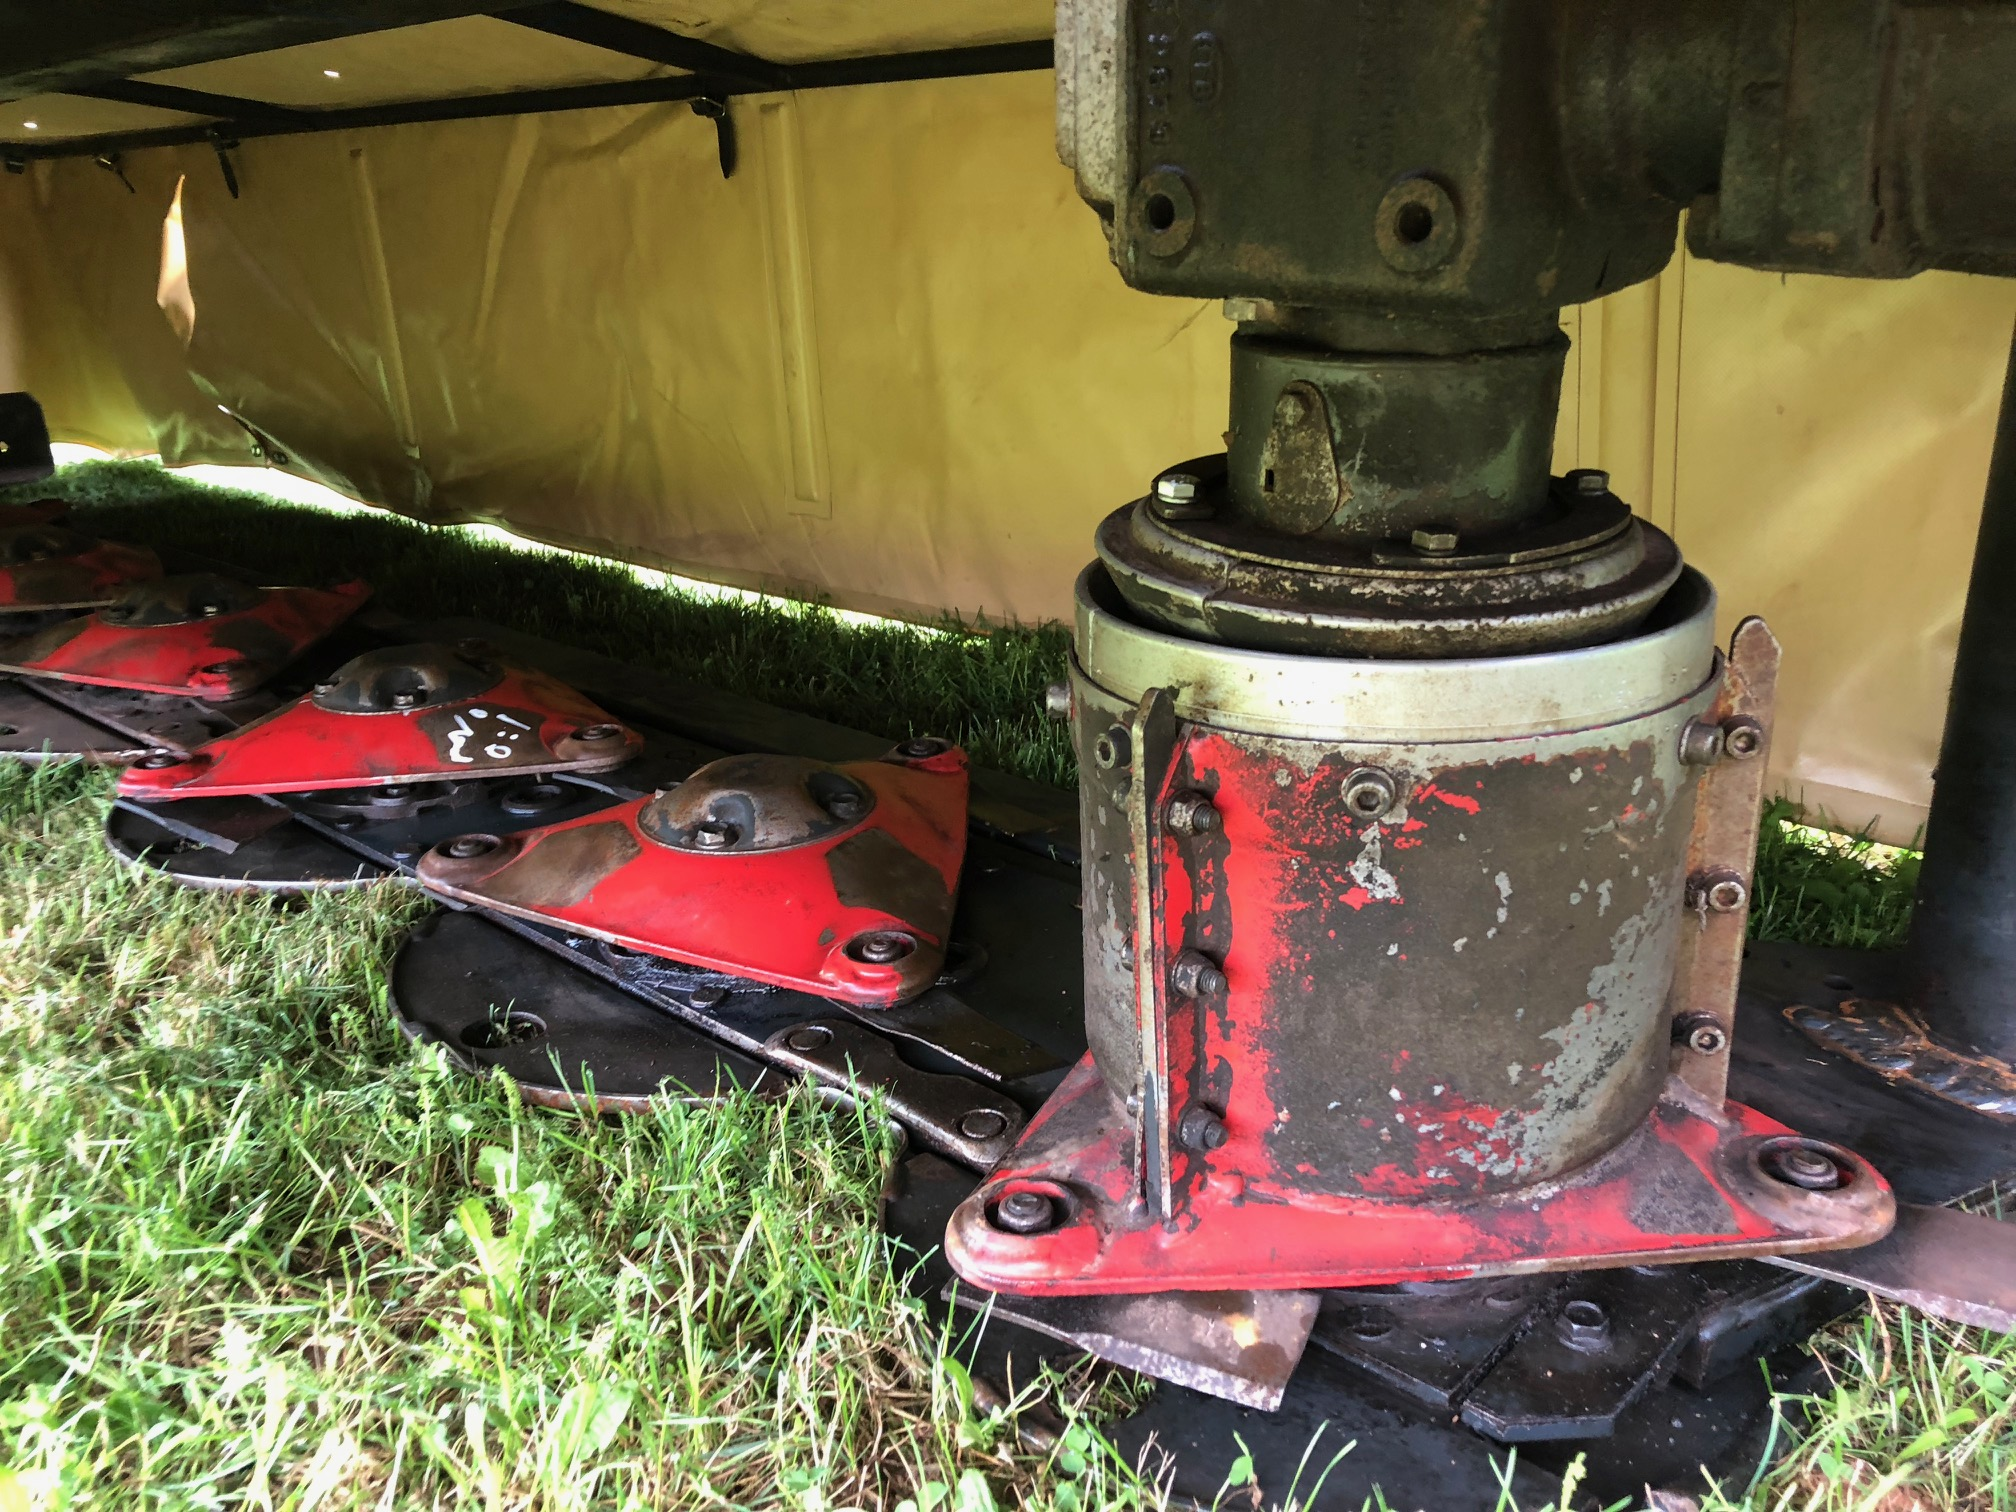 2008 Vicon DMP3200 Mower/Disc for sale in Kensington, PE | IronSearch